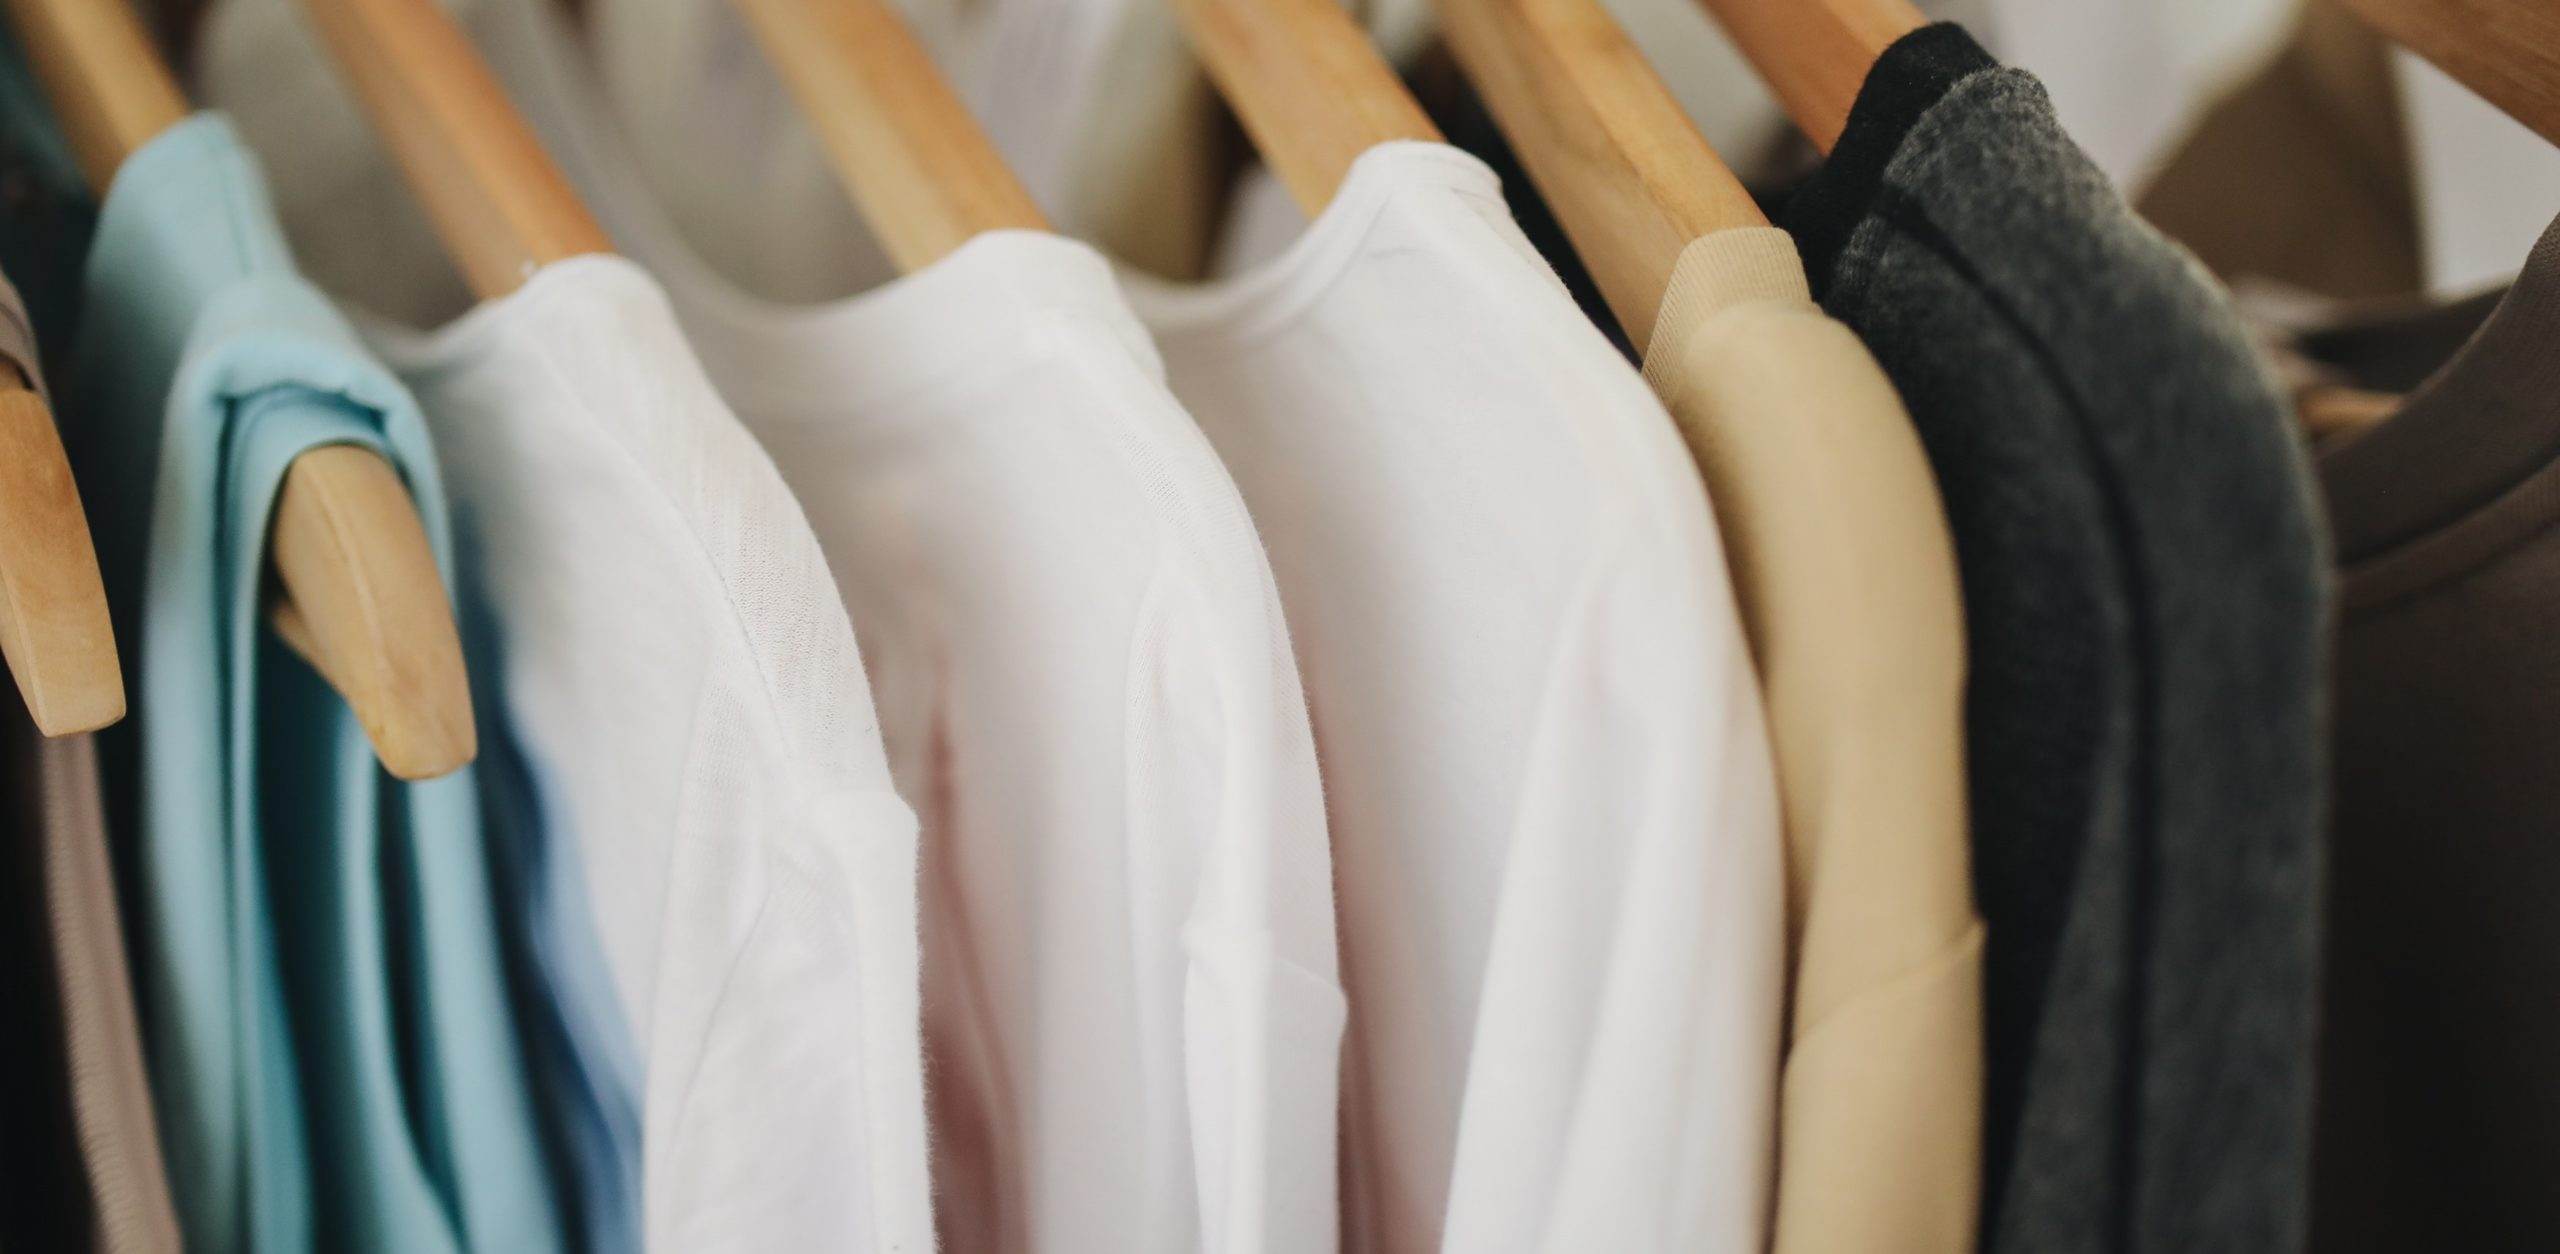 white-long-sleeves-shirts-on-brown-wooden-clothes-hanger